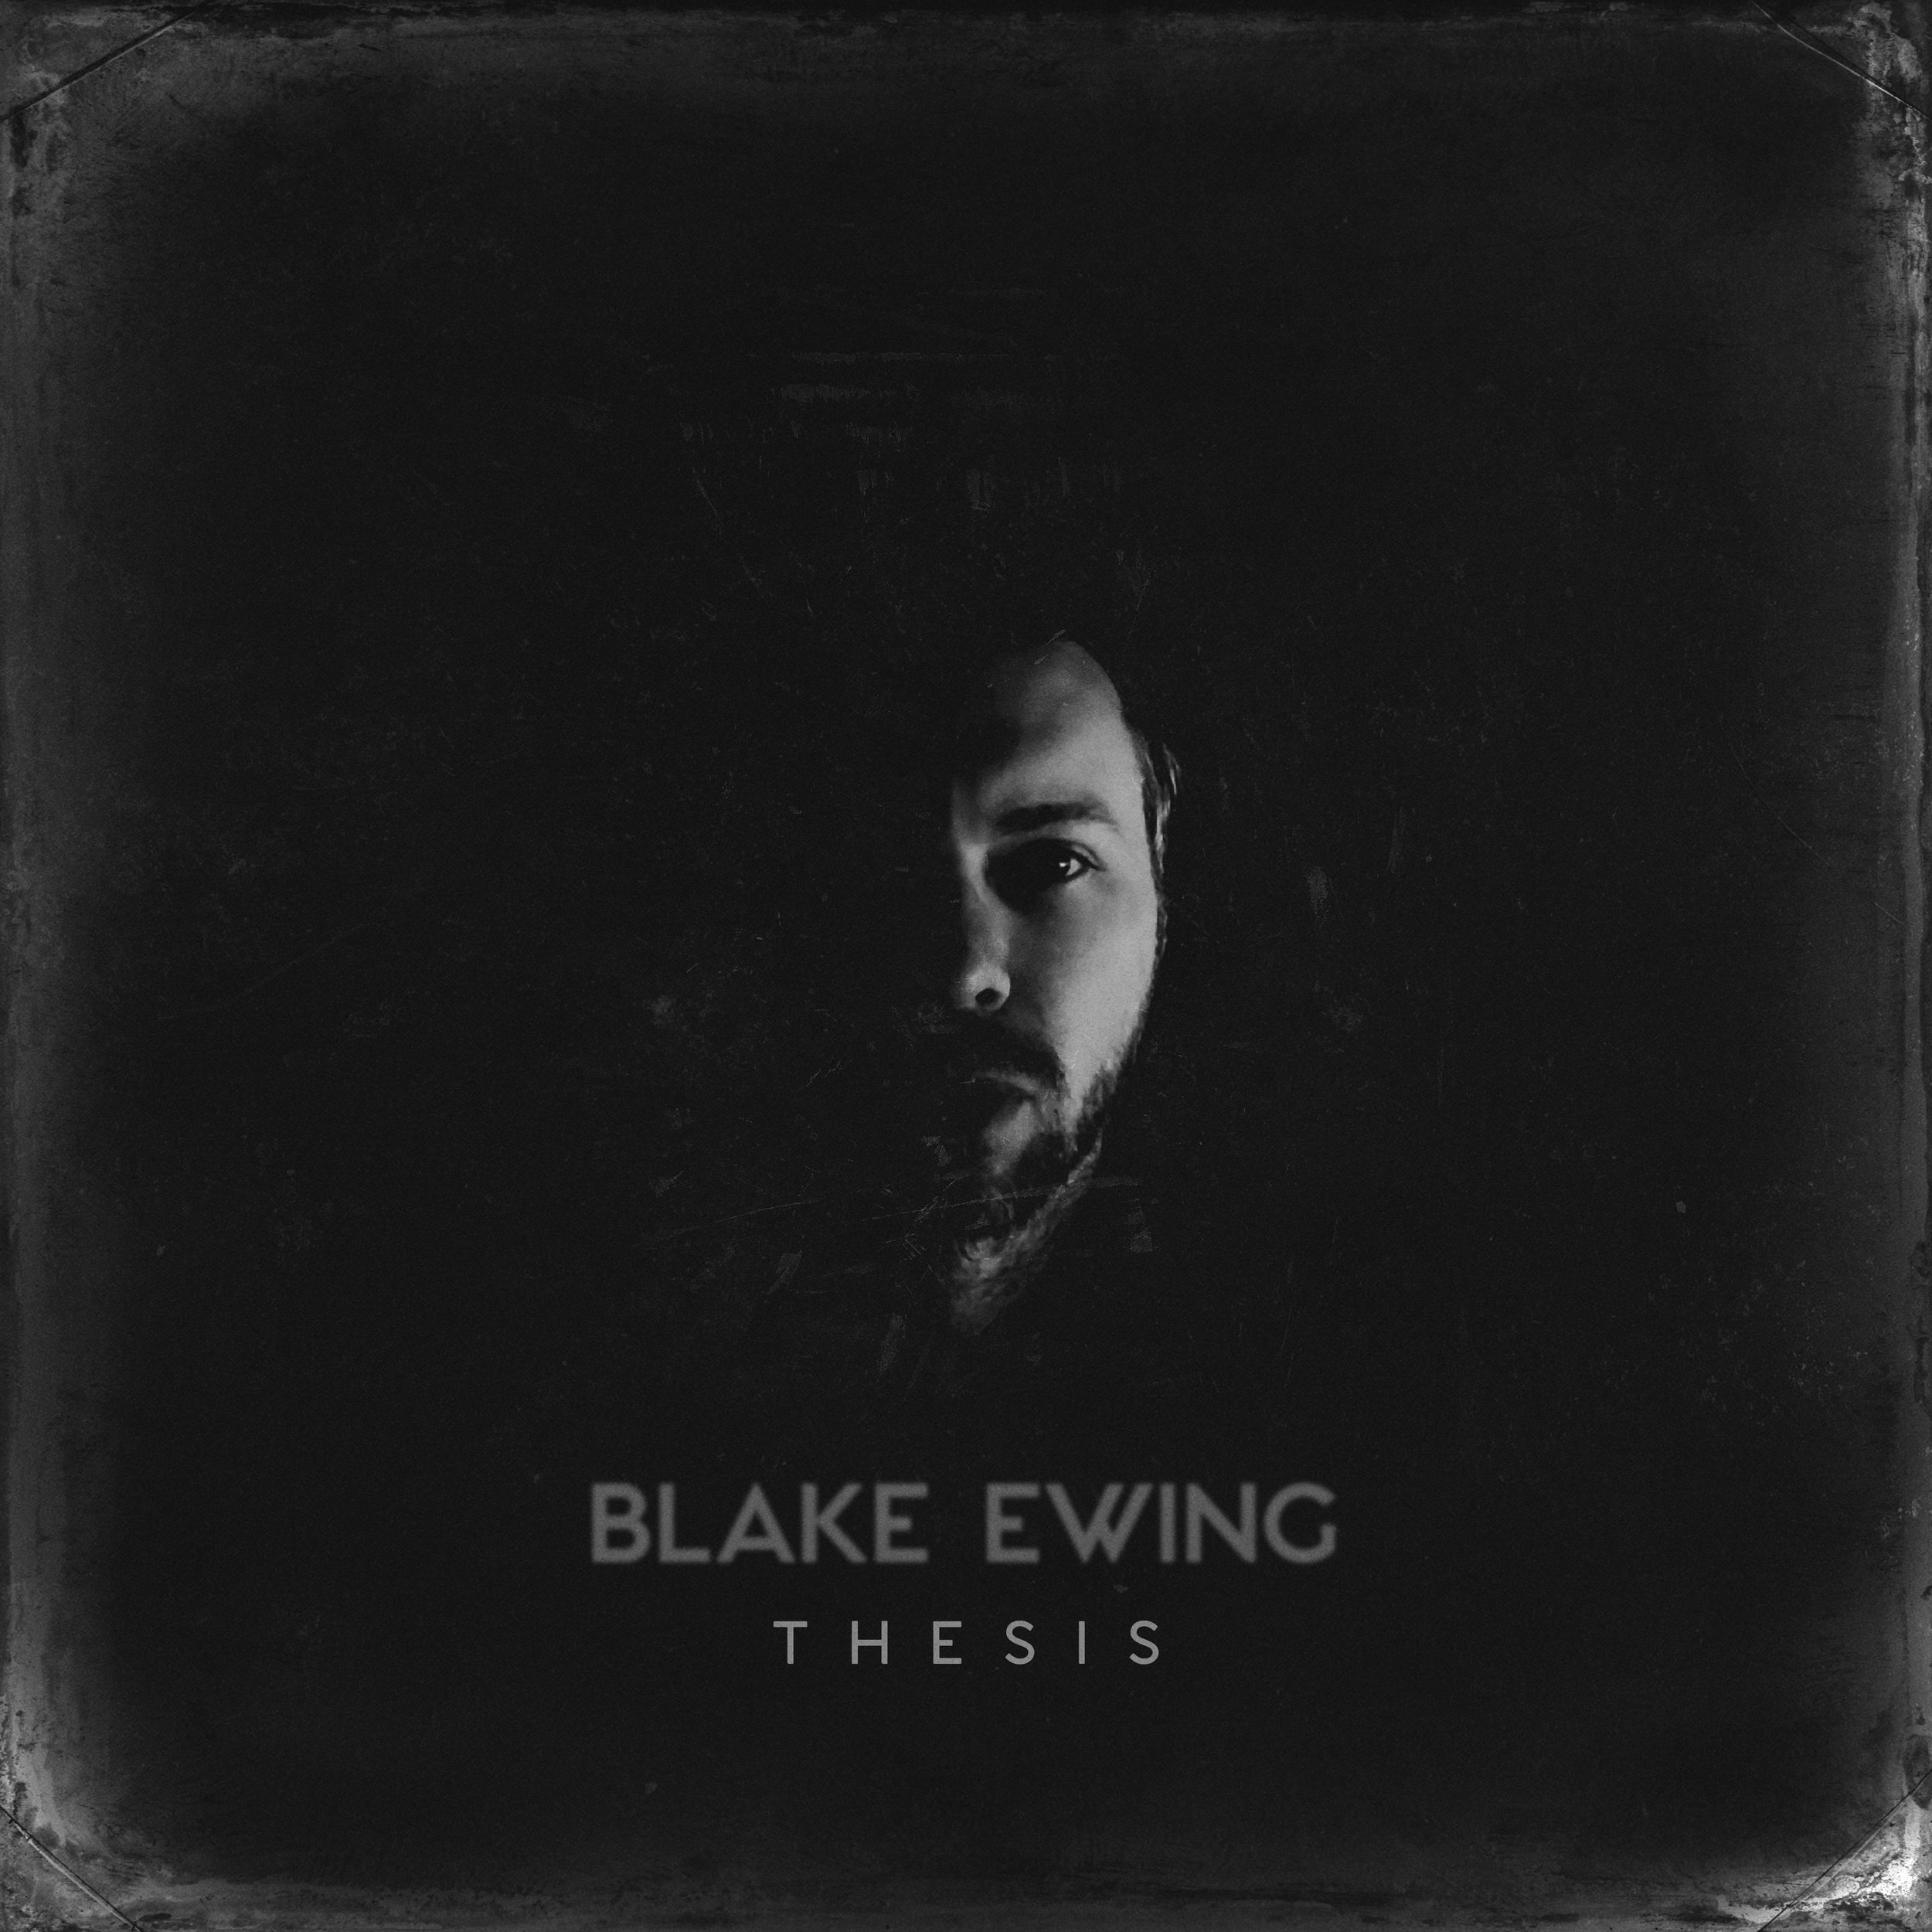 Blake Ewing - album cover_FINAL.jpg